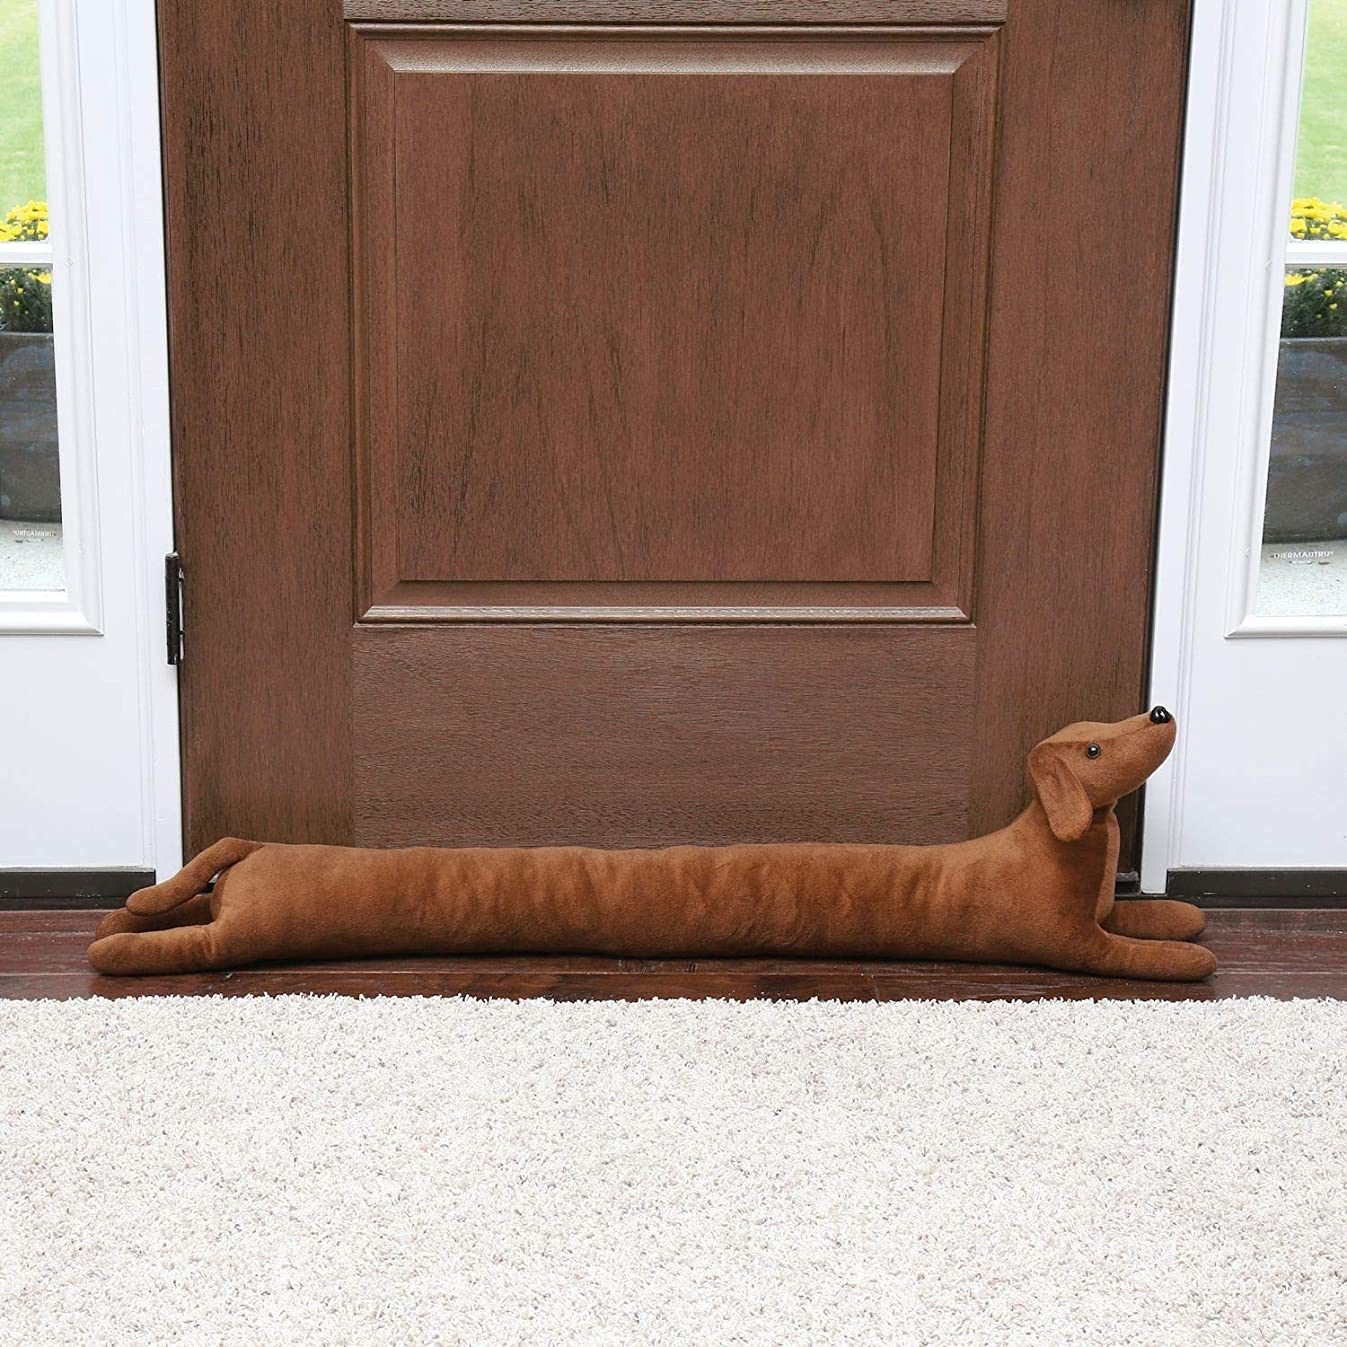 WHAT ON EARTH Dachshund Draft Dodger - Dog Shaped Weighted Door/Window Breeze and Bug Guard, Noise Reducer - 41.5